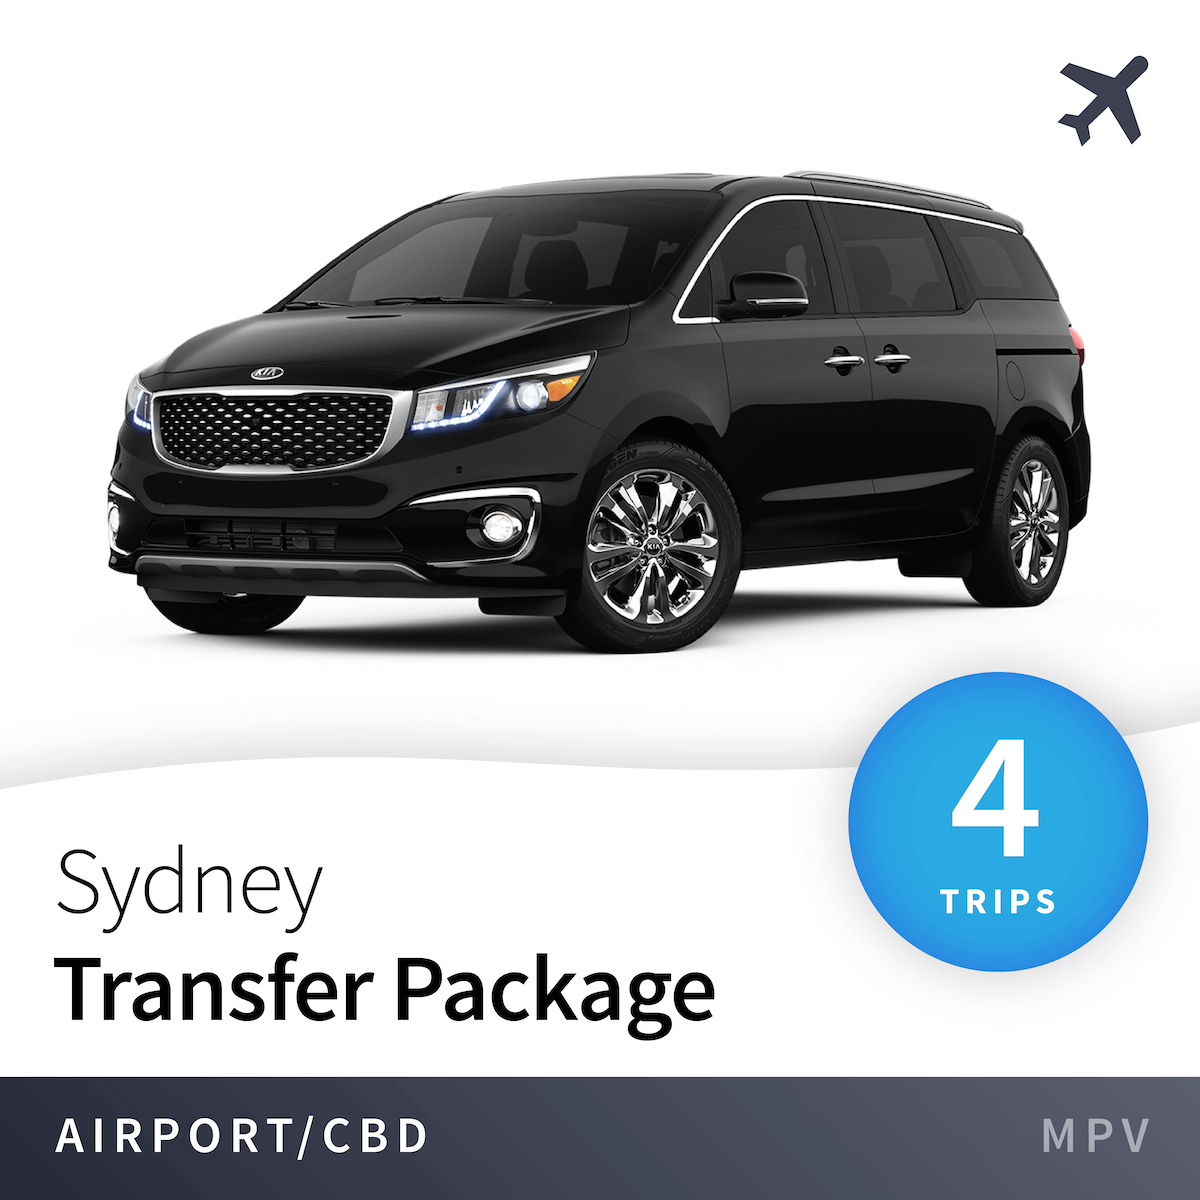 Sydney Airport Transfer Package - MPV (4 Trips) 9